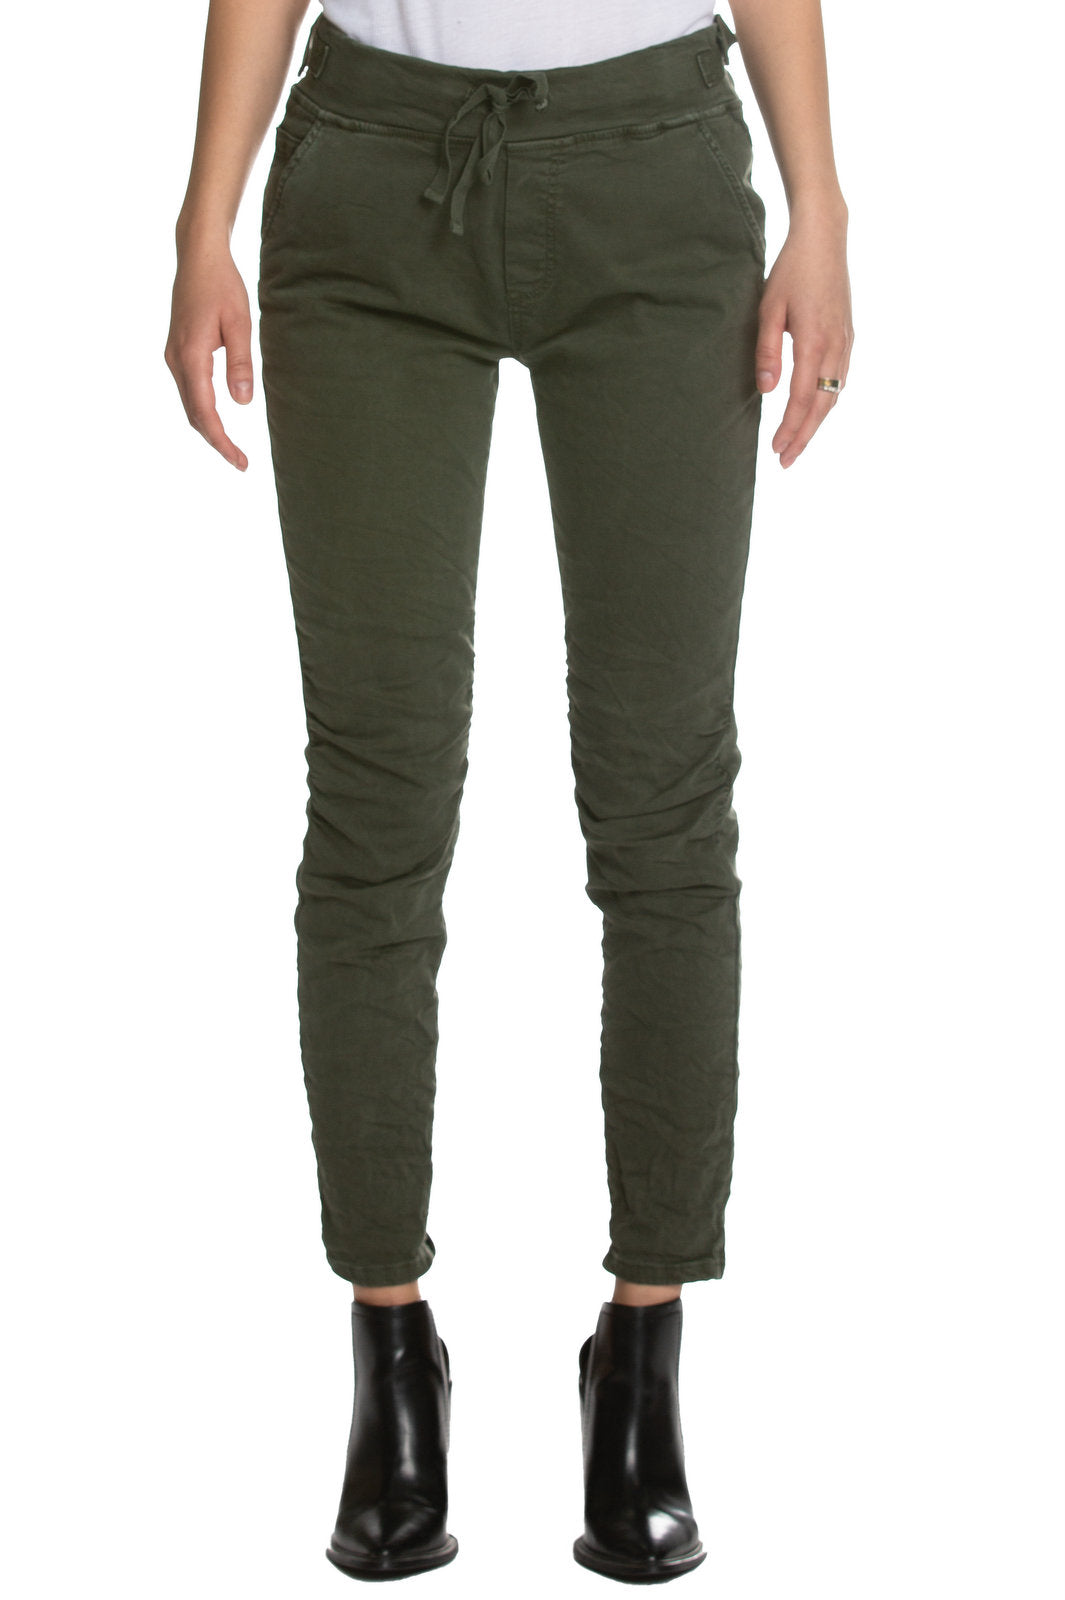 Casual Elastic Pull On Skinny Pants